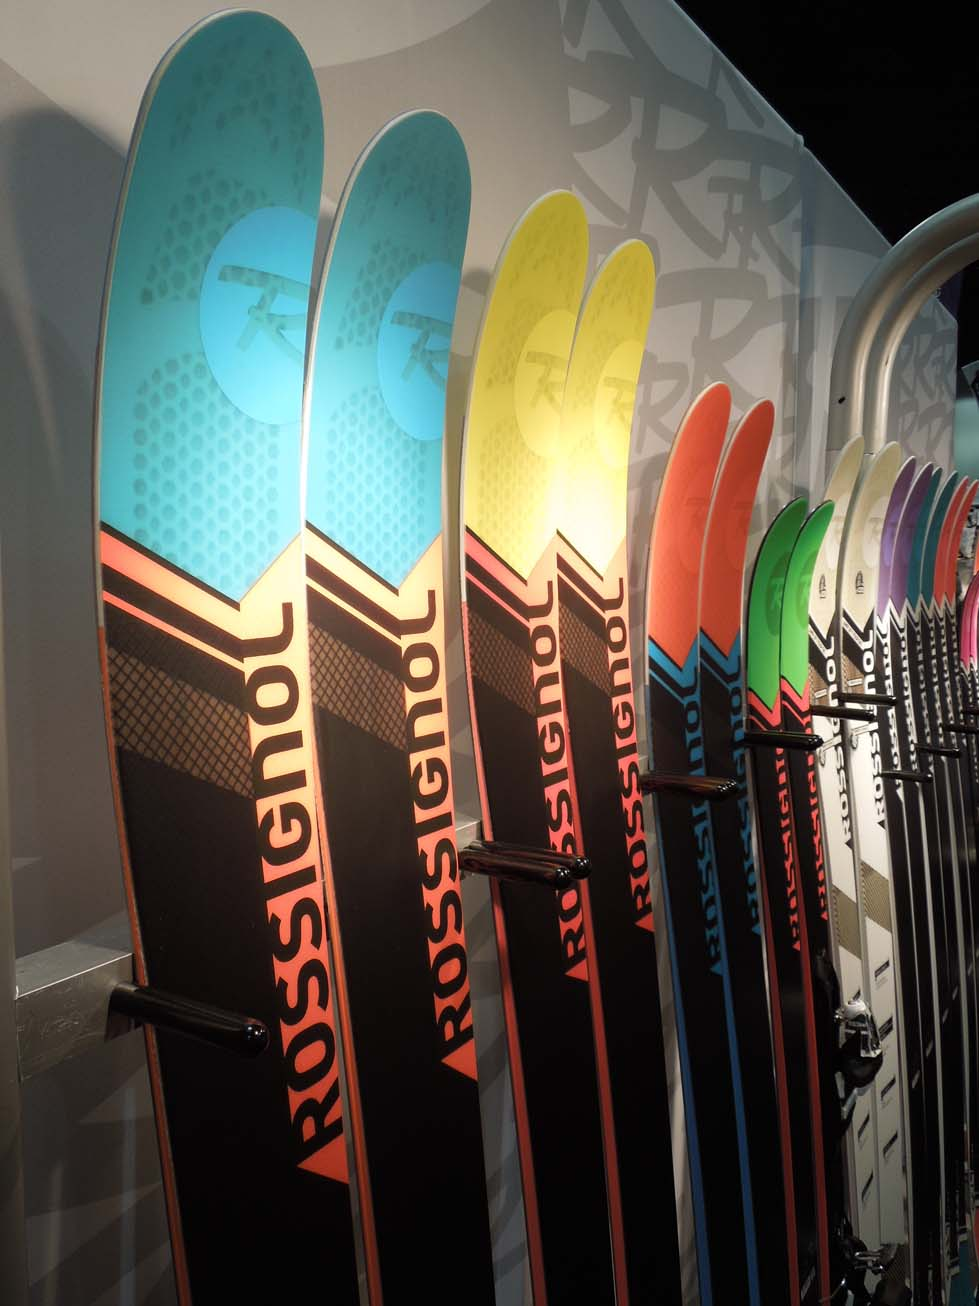 Sneak Peek: 2017 Rossignol Skis – Soul 7, Sky 7, Experience and More